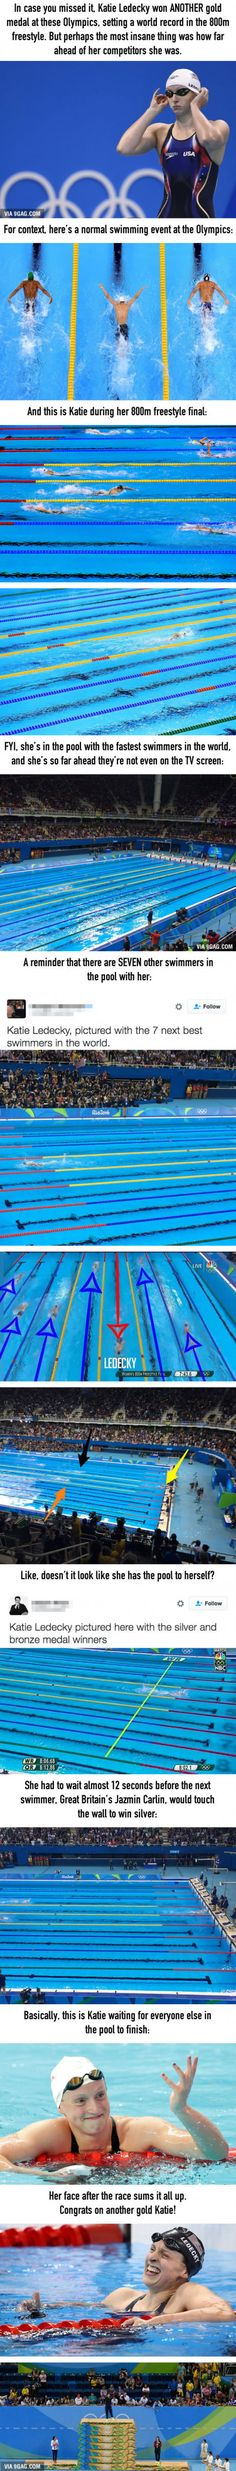 This Is How Much Faster Katie Ledecky Is Than Everyone Else In The Pool